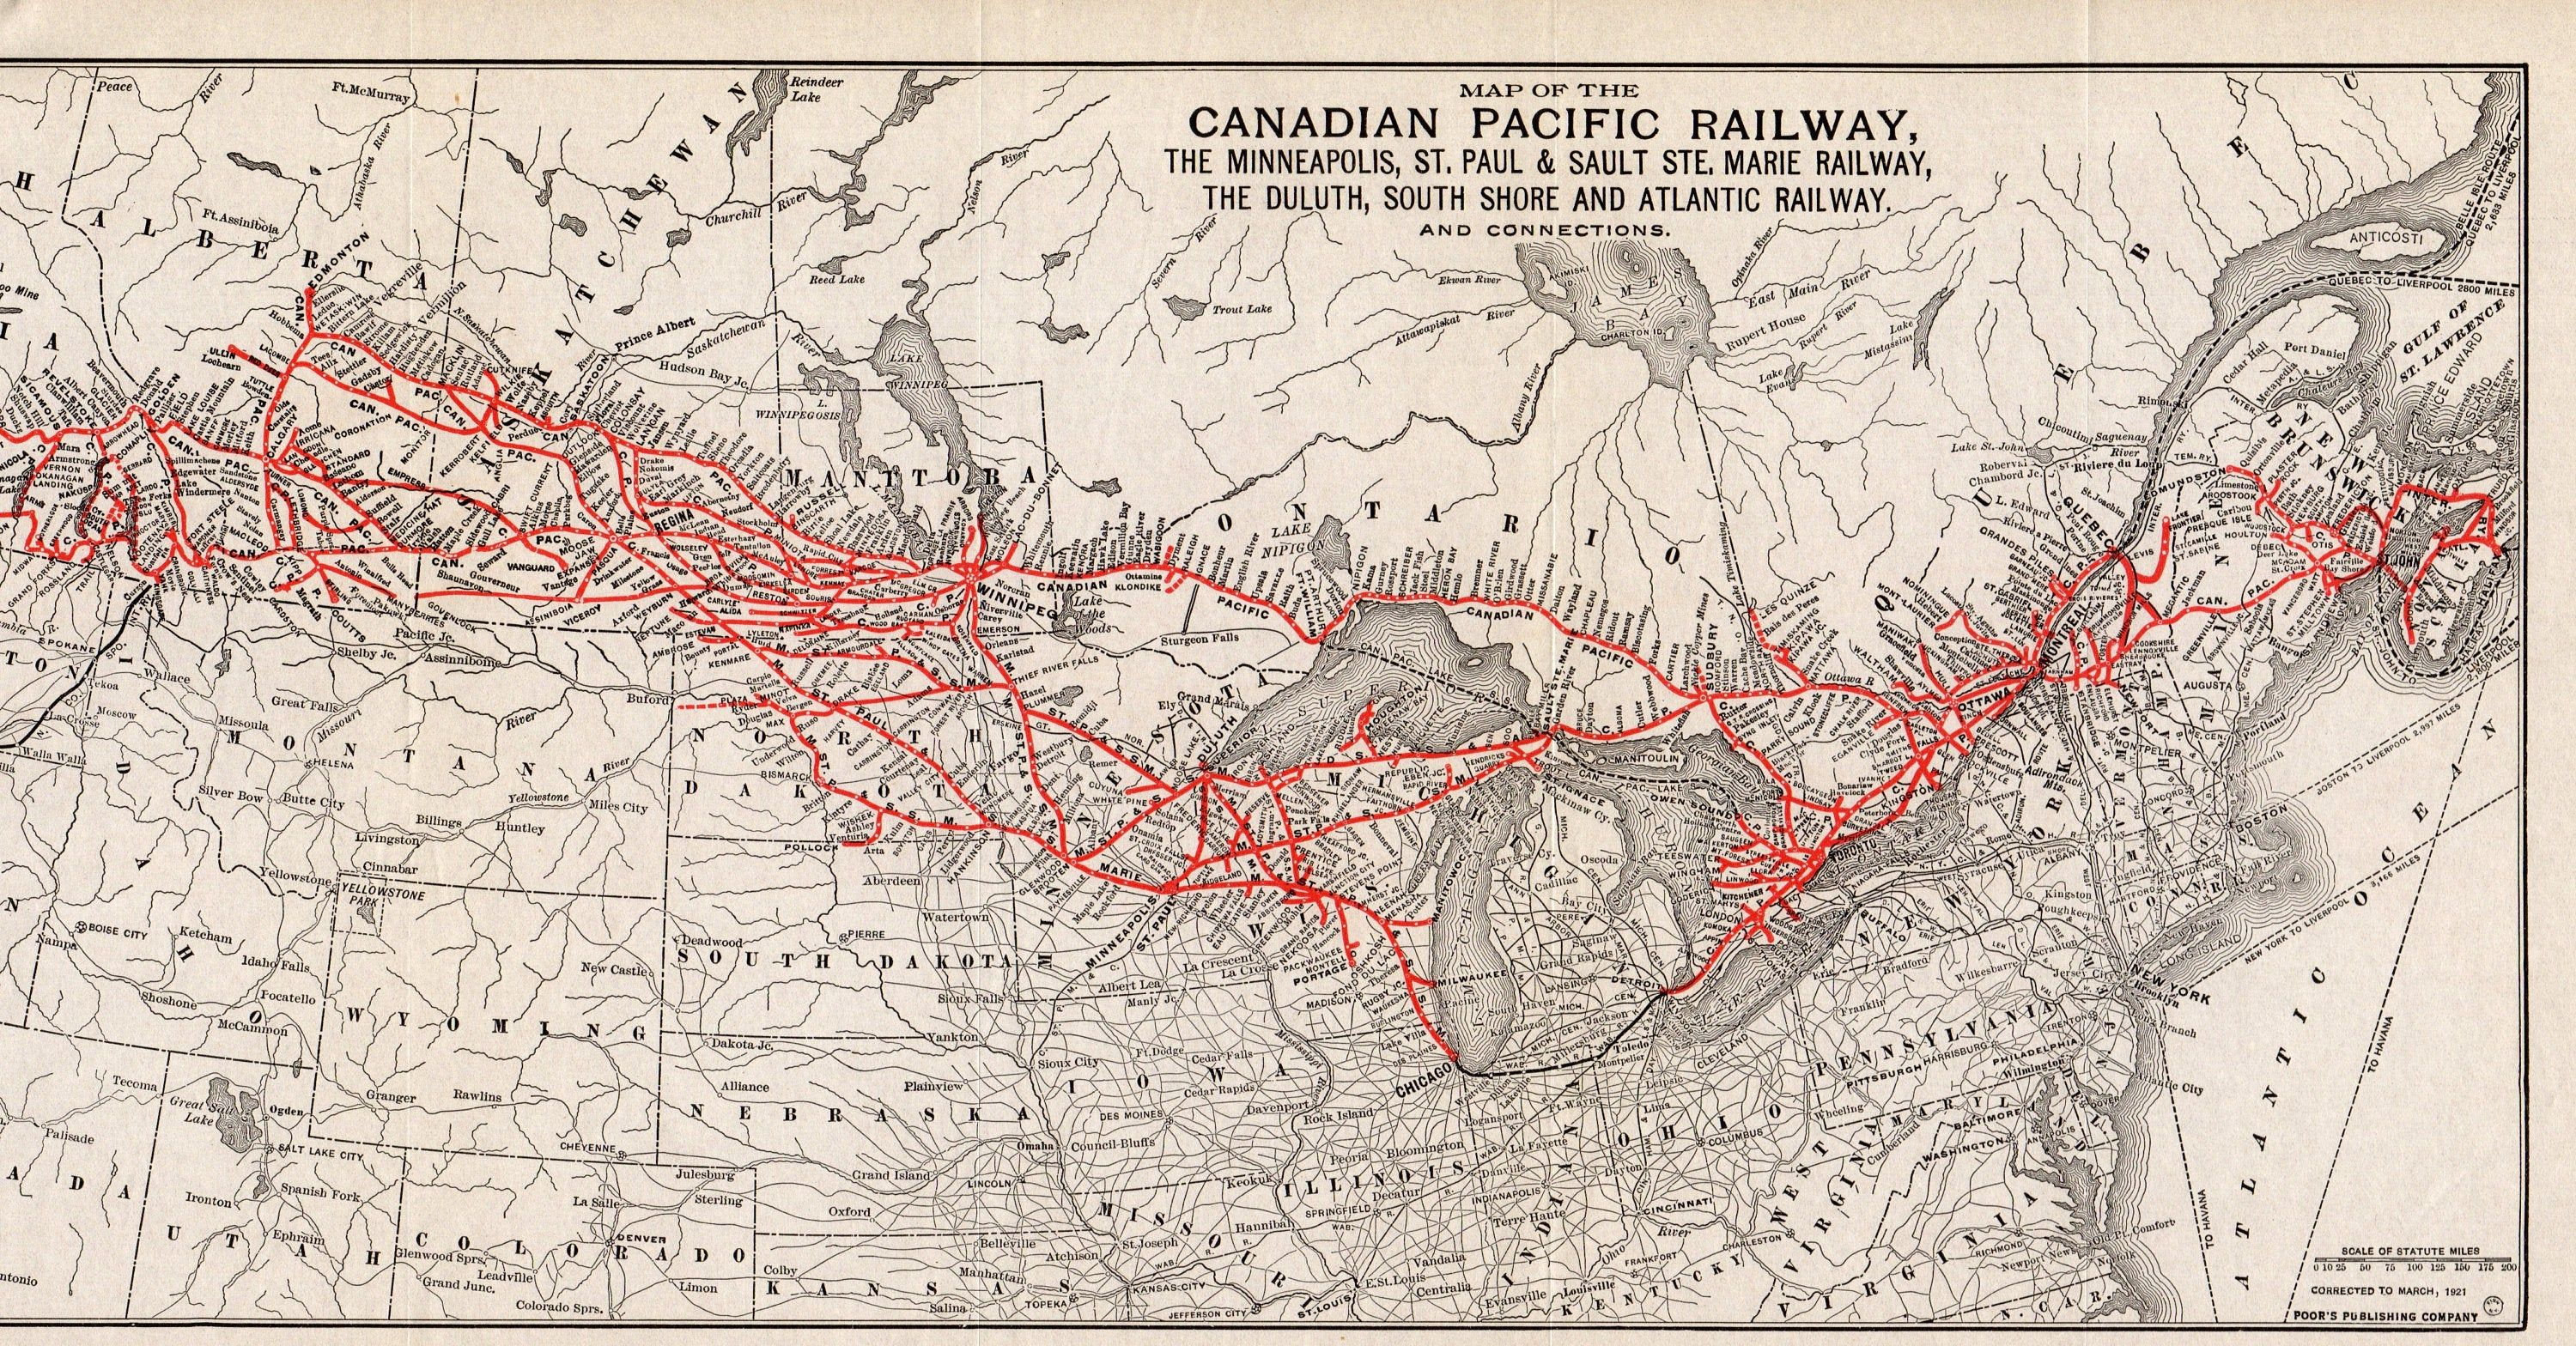 Canadian Pacific Railway Track Map Canada 1921 Antique Canadian Pacific Railway Map Duluth South Shore and